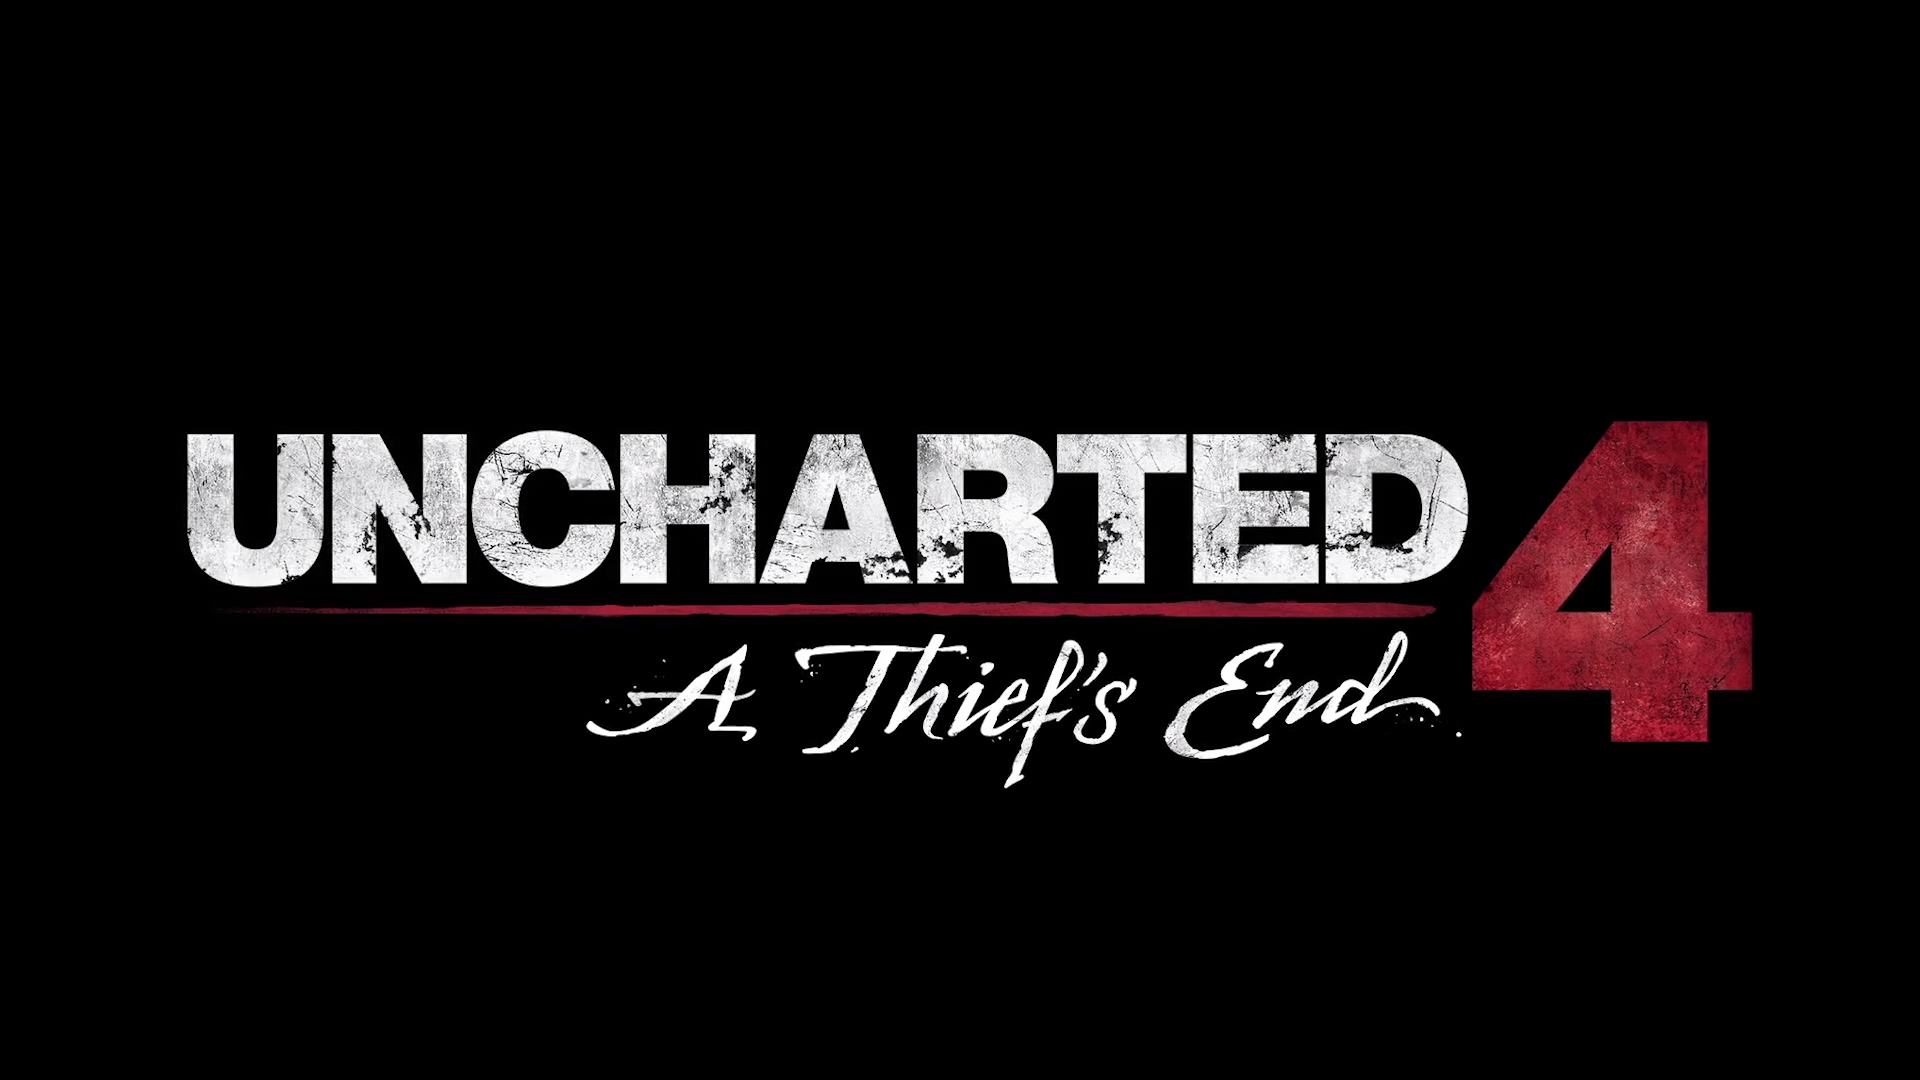 Uncharted 4 A Thief S End Coming In 2015 Pulp 365 Uncharted Uncharted Series Uncharted Game